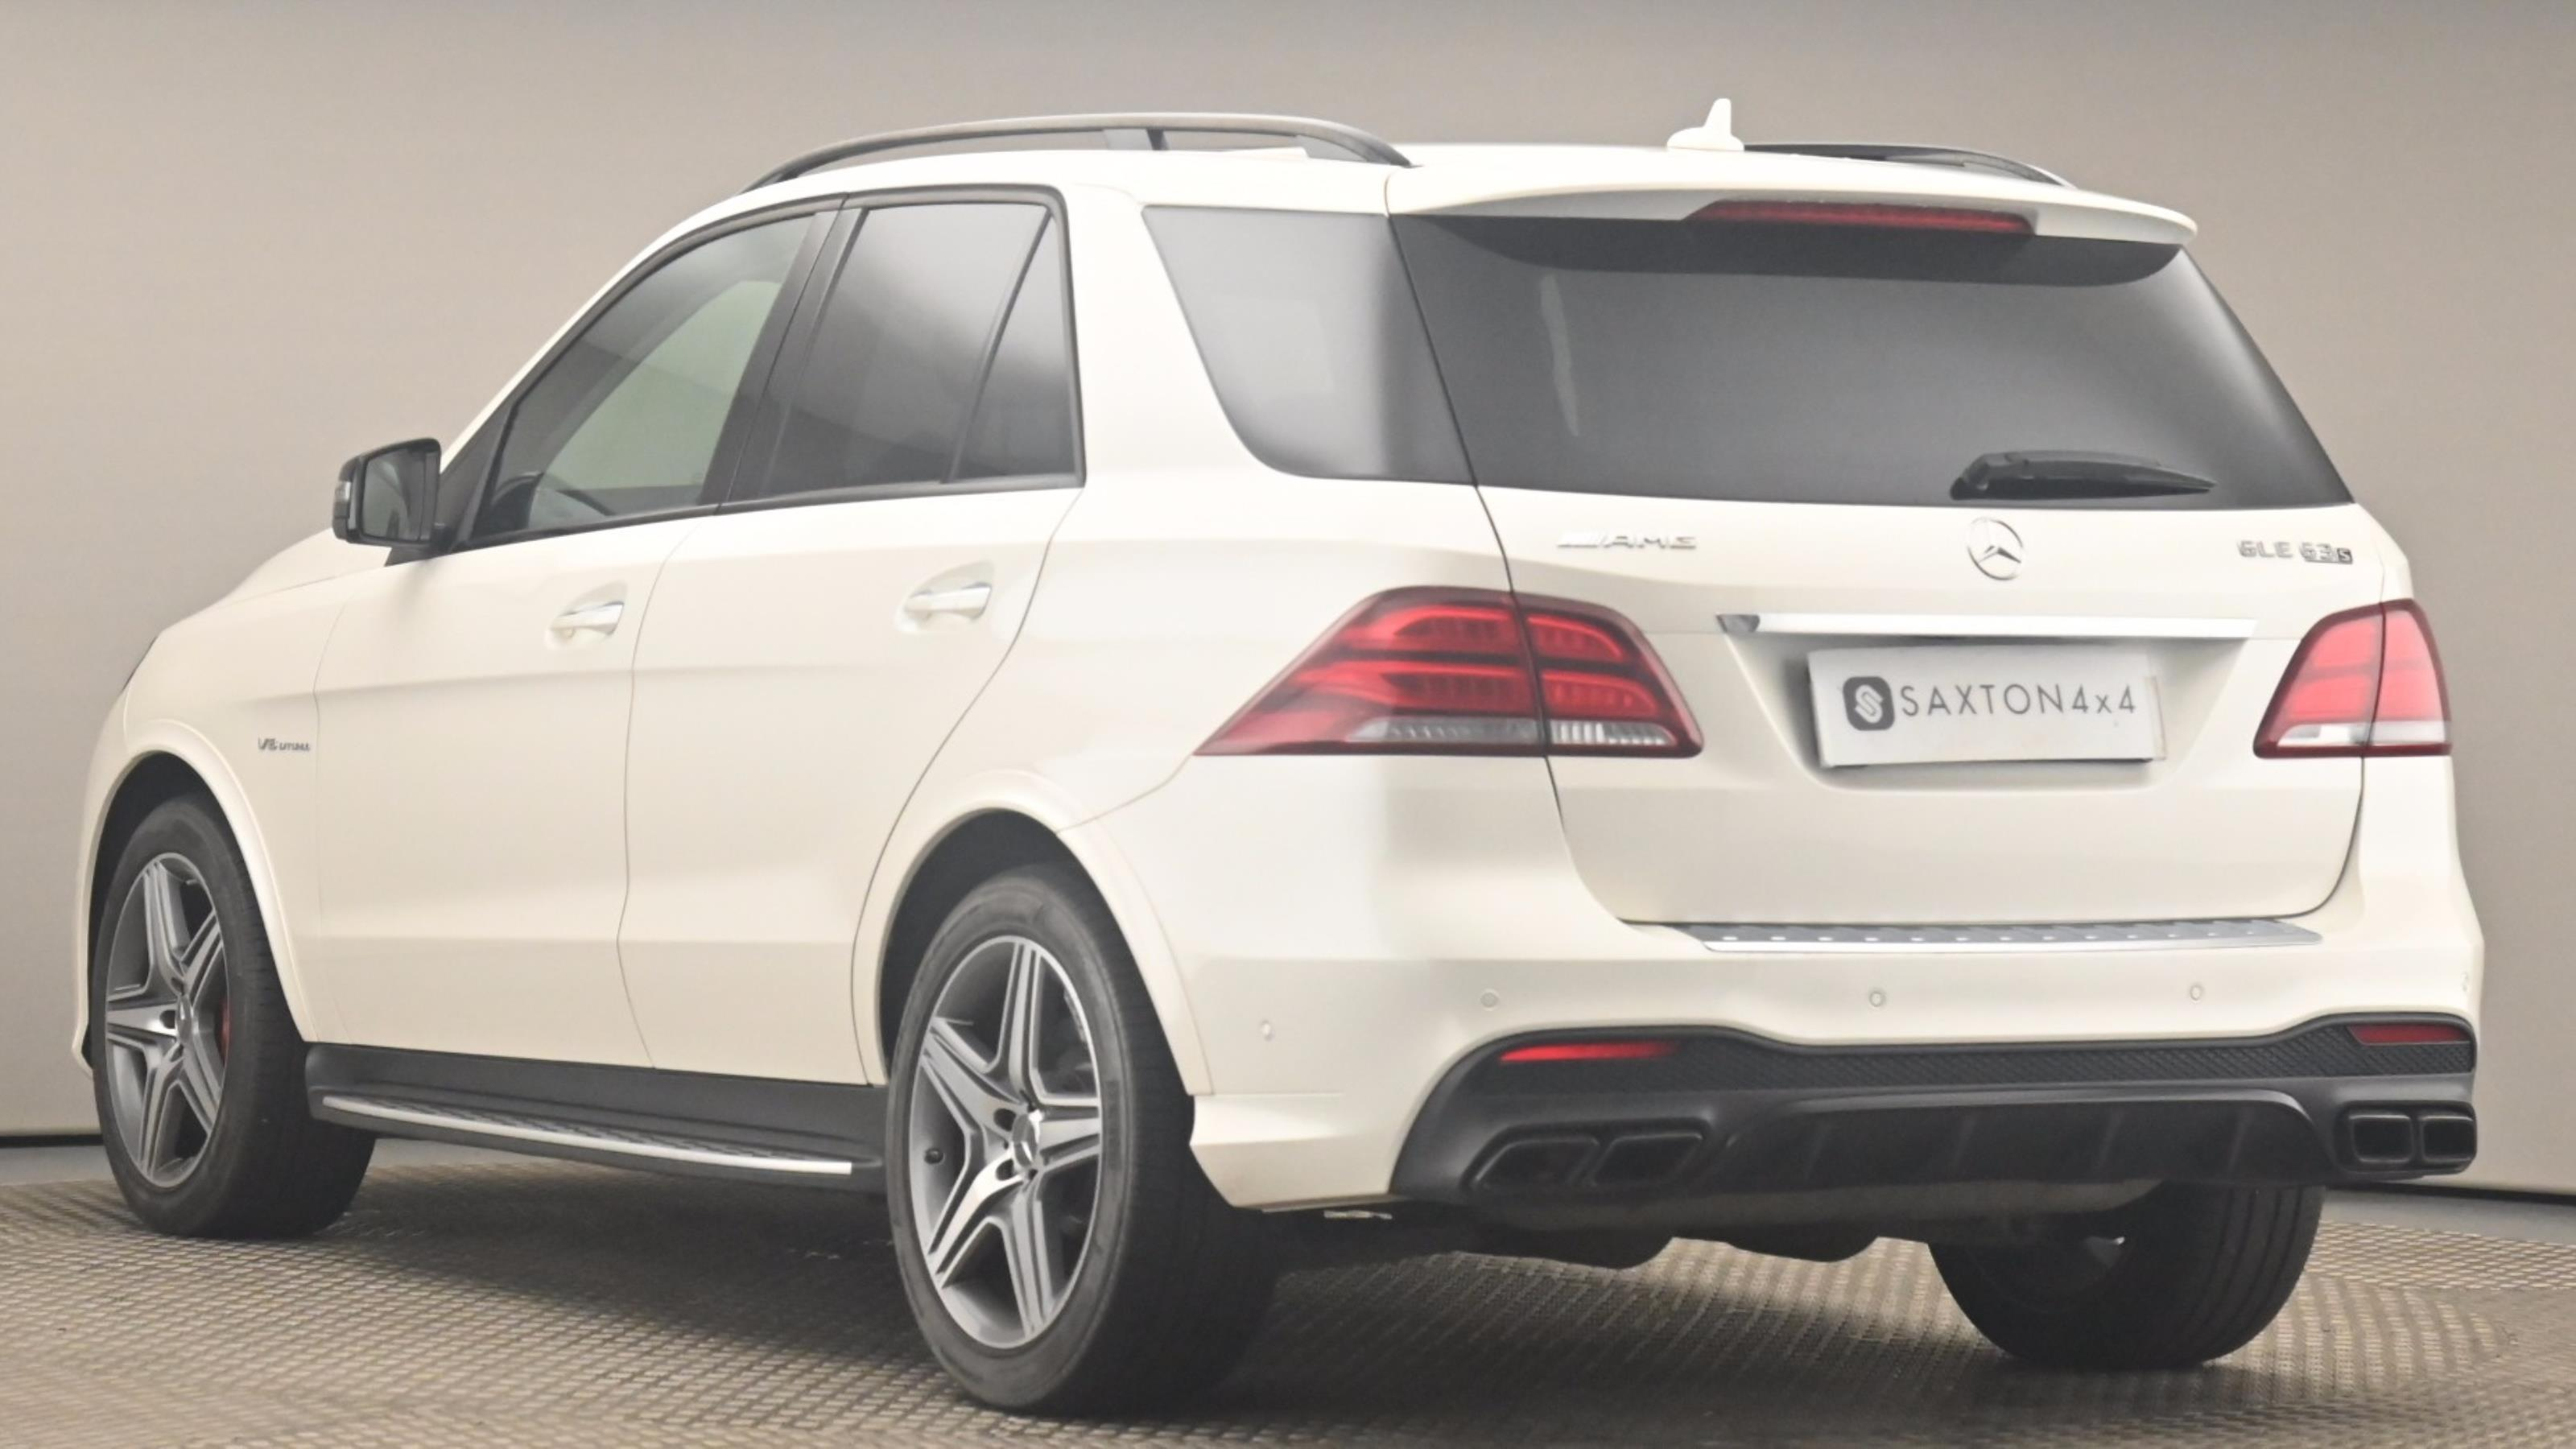 Used 2018 Mercedes-Benz GLE GLE 63 S 4Matic Premium 5dr 7G-Tronic WHITE at Saxton4x4